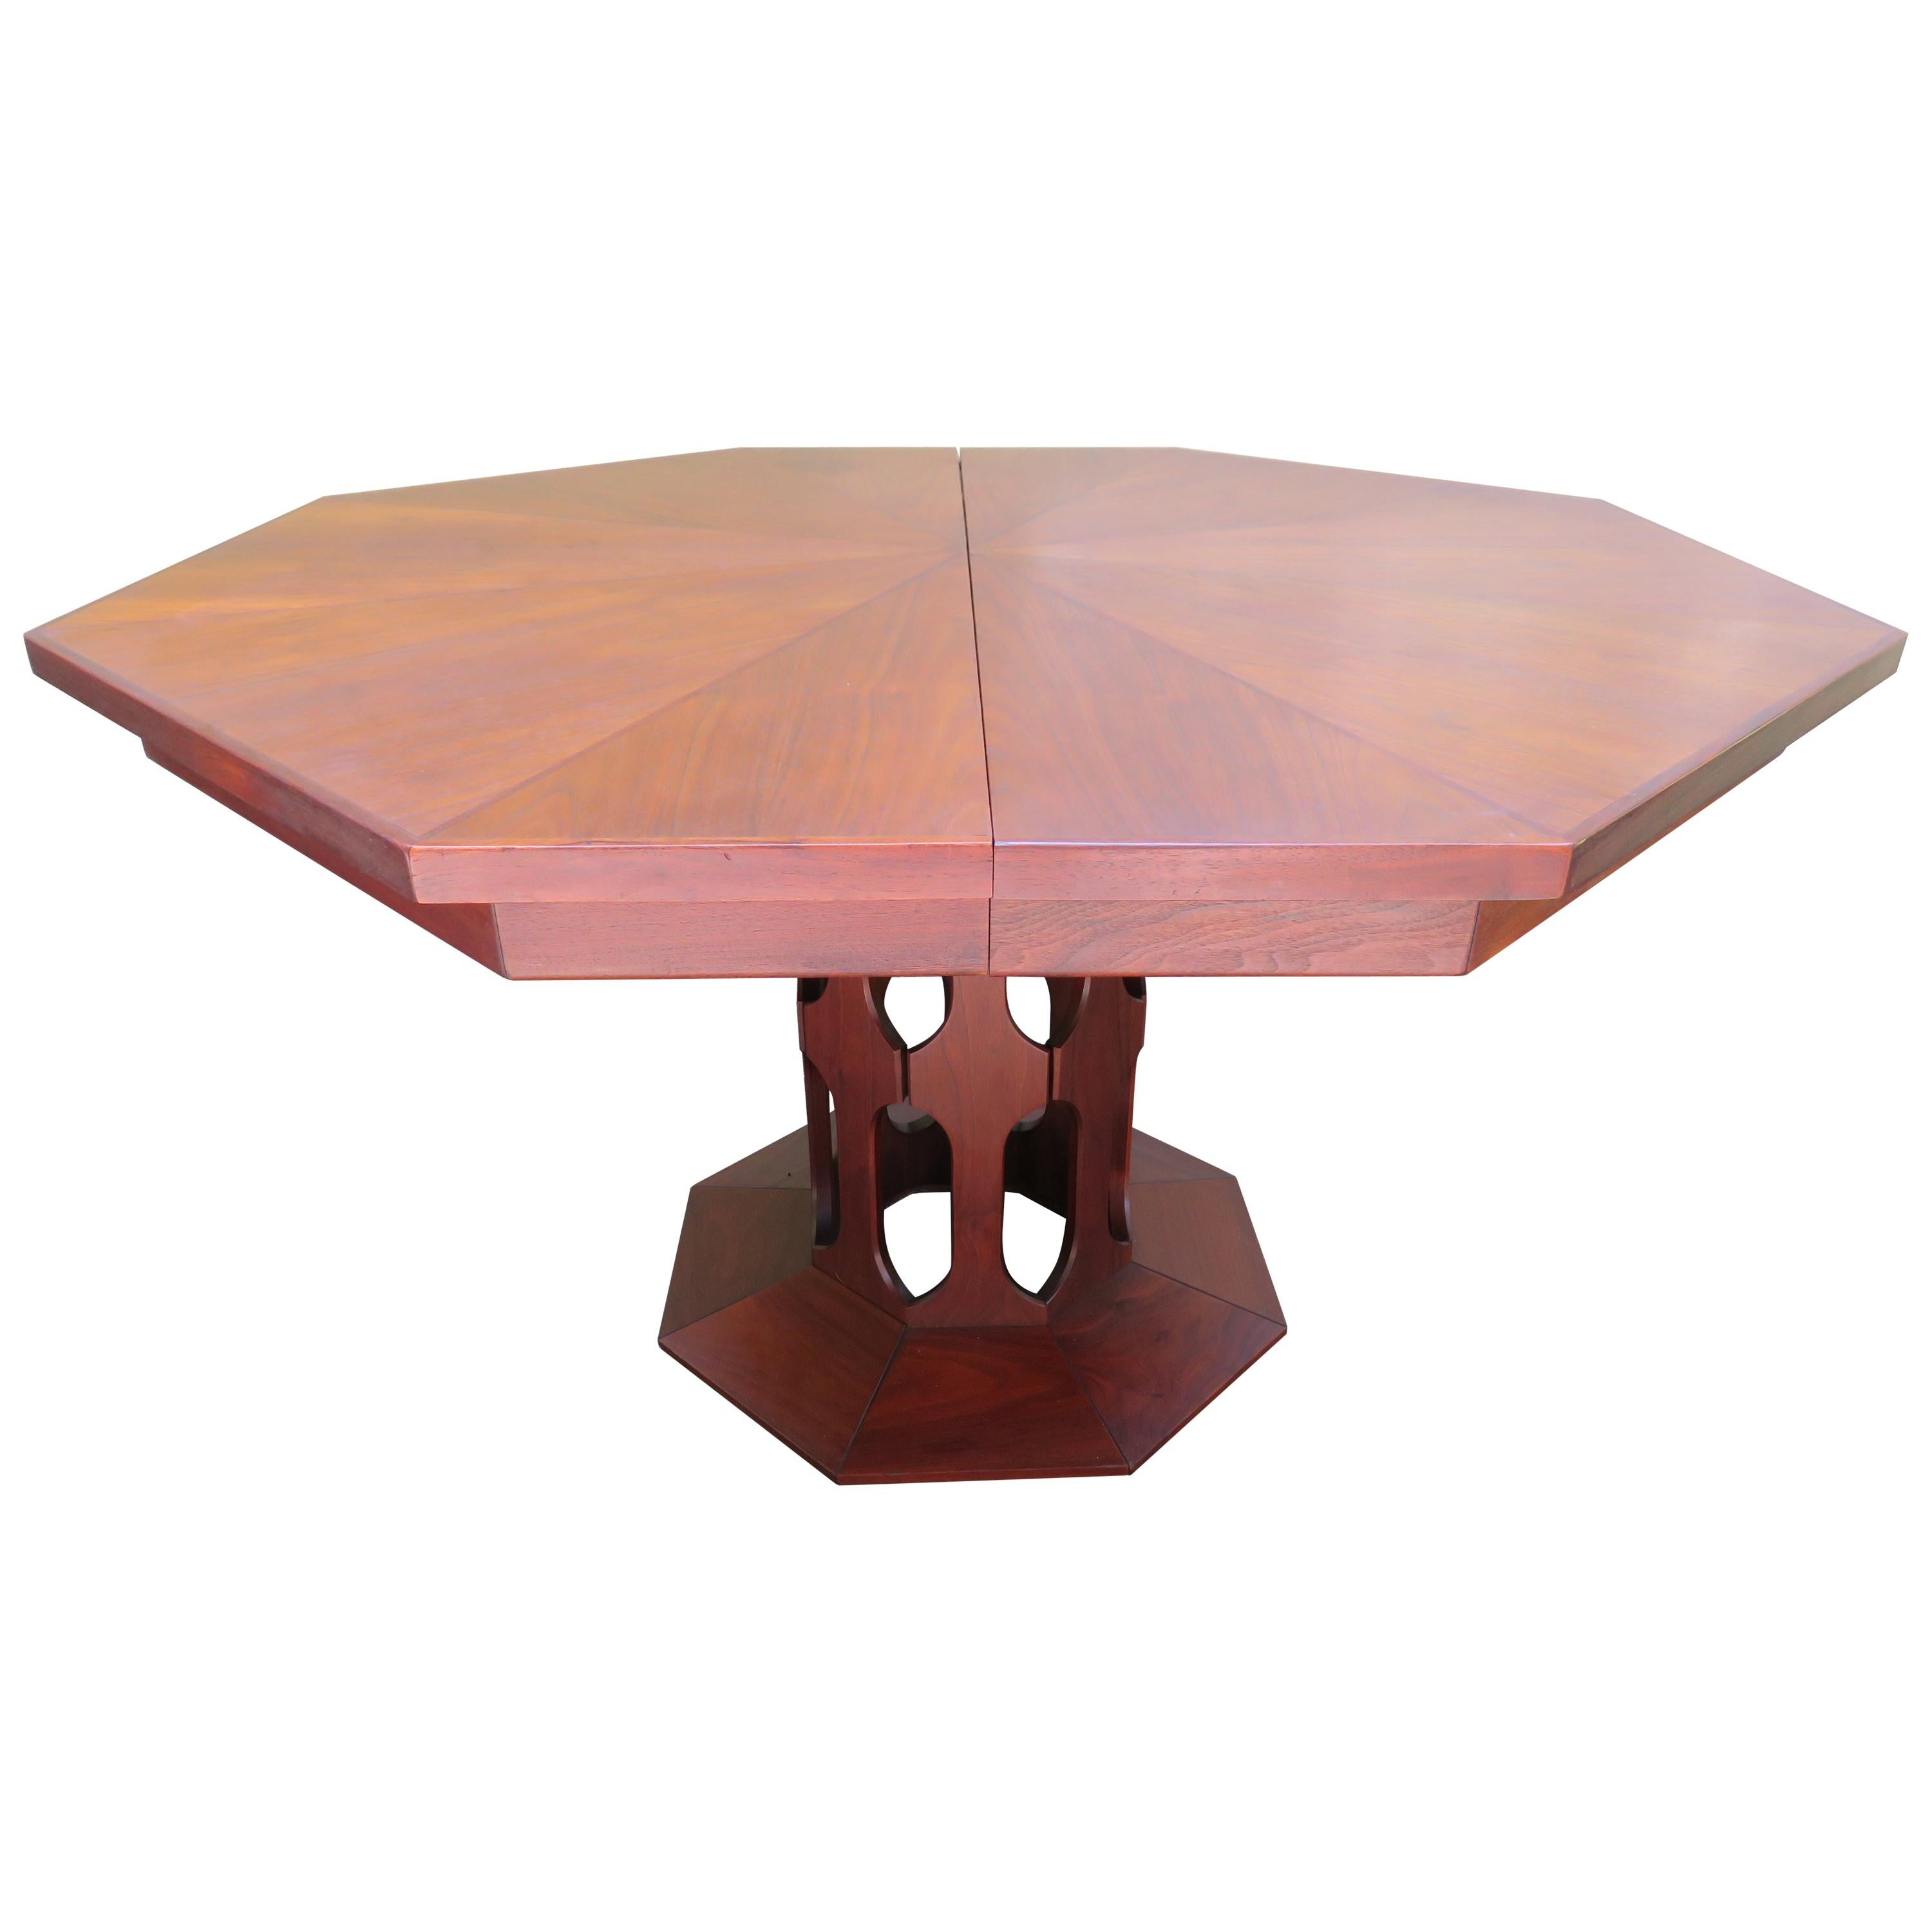 Harvey Probber Style Walnut Octagon Extension Table 4 Leaves Mid-Century  Modern